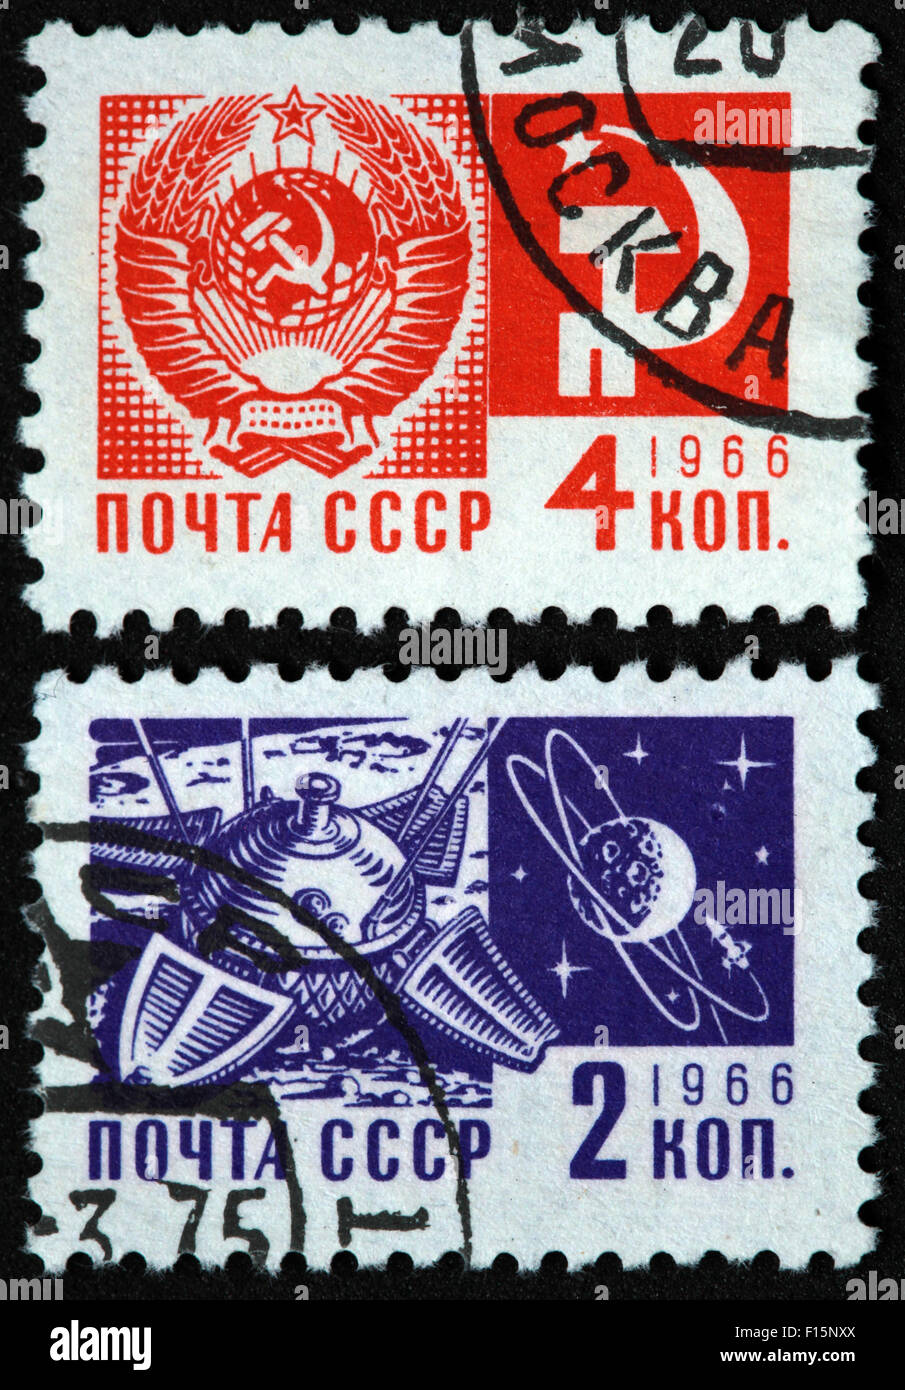 4 and 2 Kon Kopek  Mockba 1966 space stamps - Stock Image